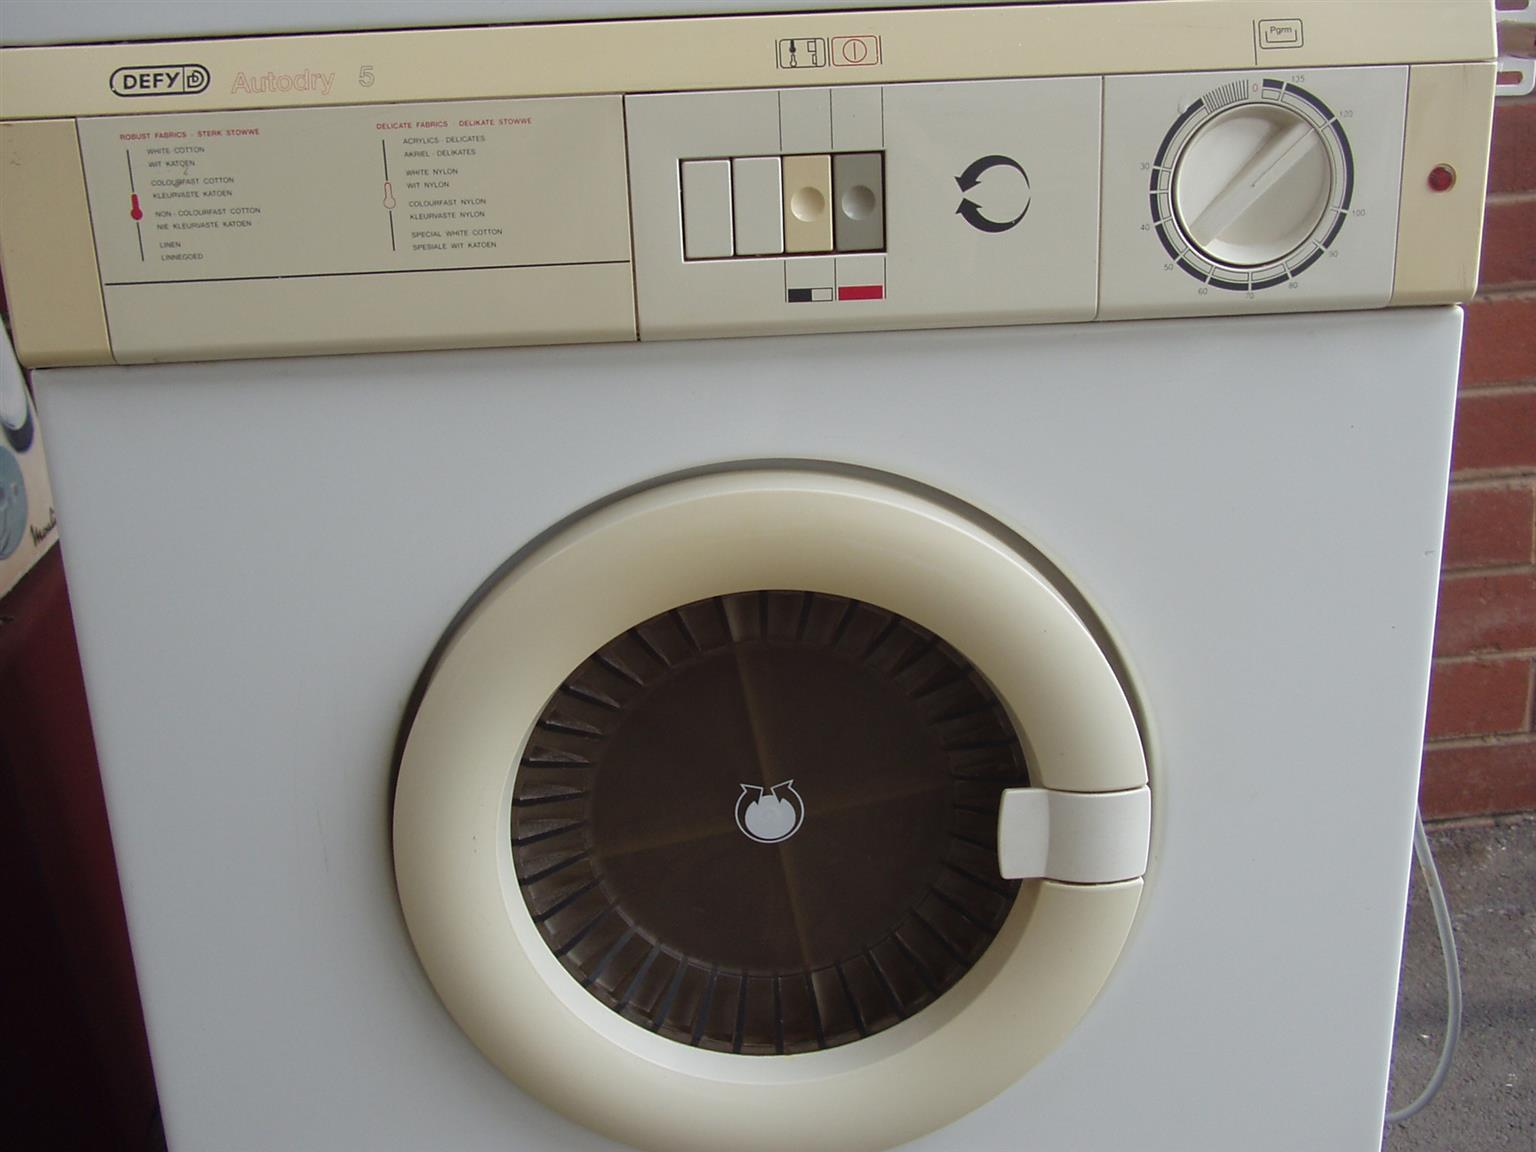 Defy Tumble Dryer - Auto Dry  - 5kg - in excellent working order